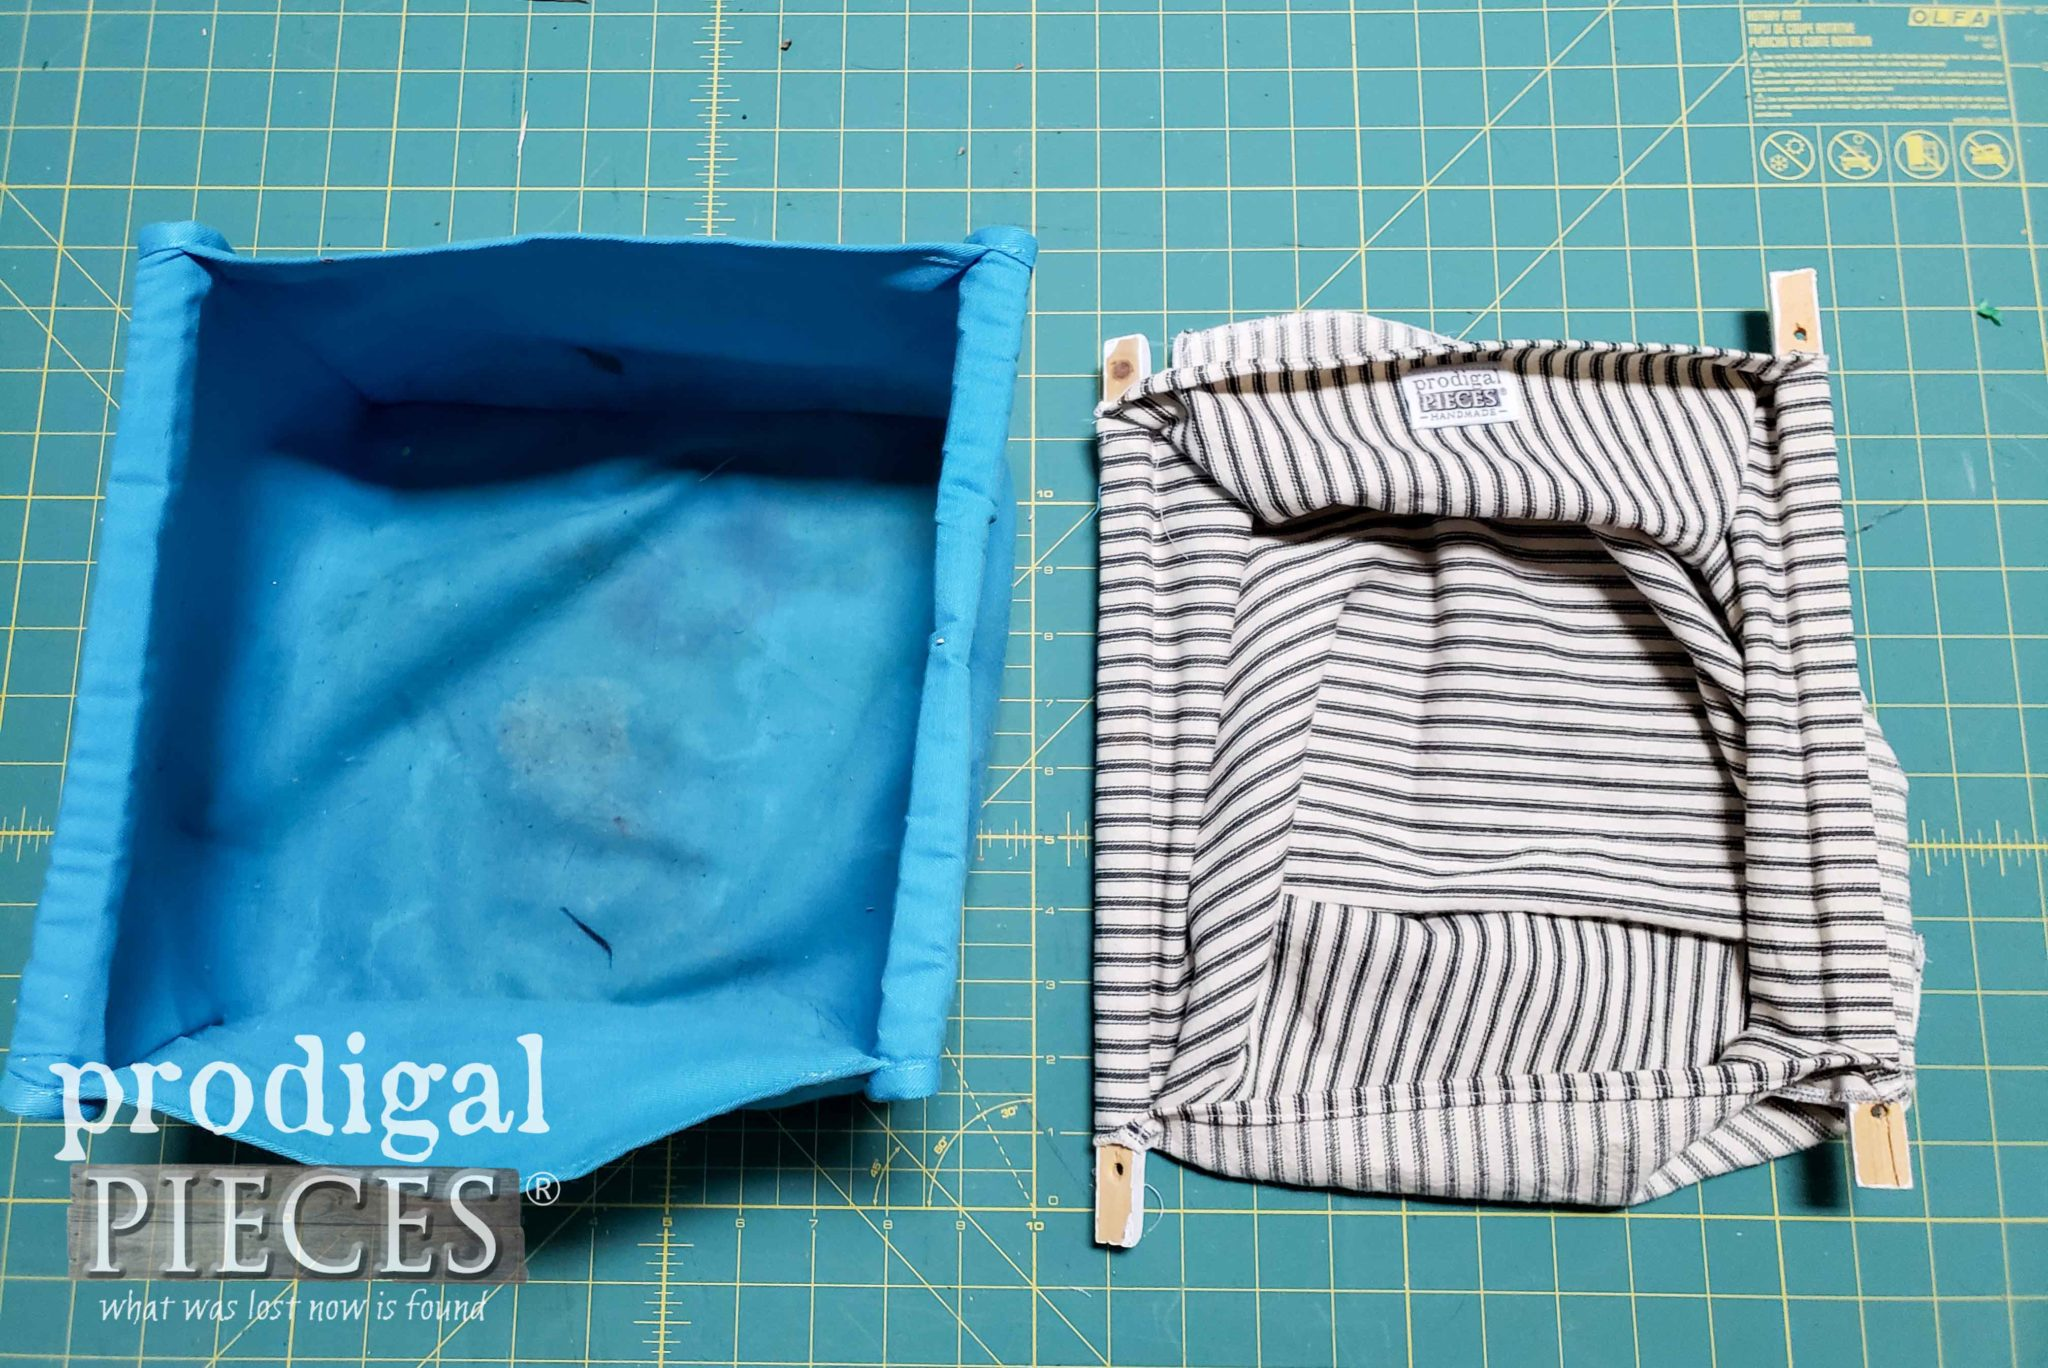 Sewing New Play Table Liner | prodigalpieces.com